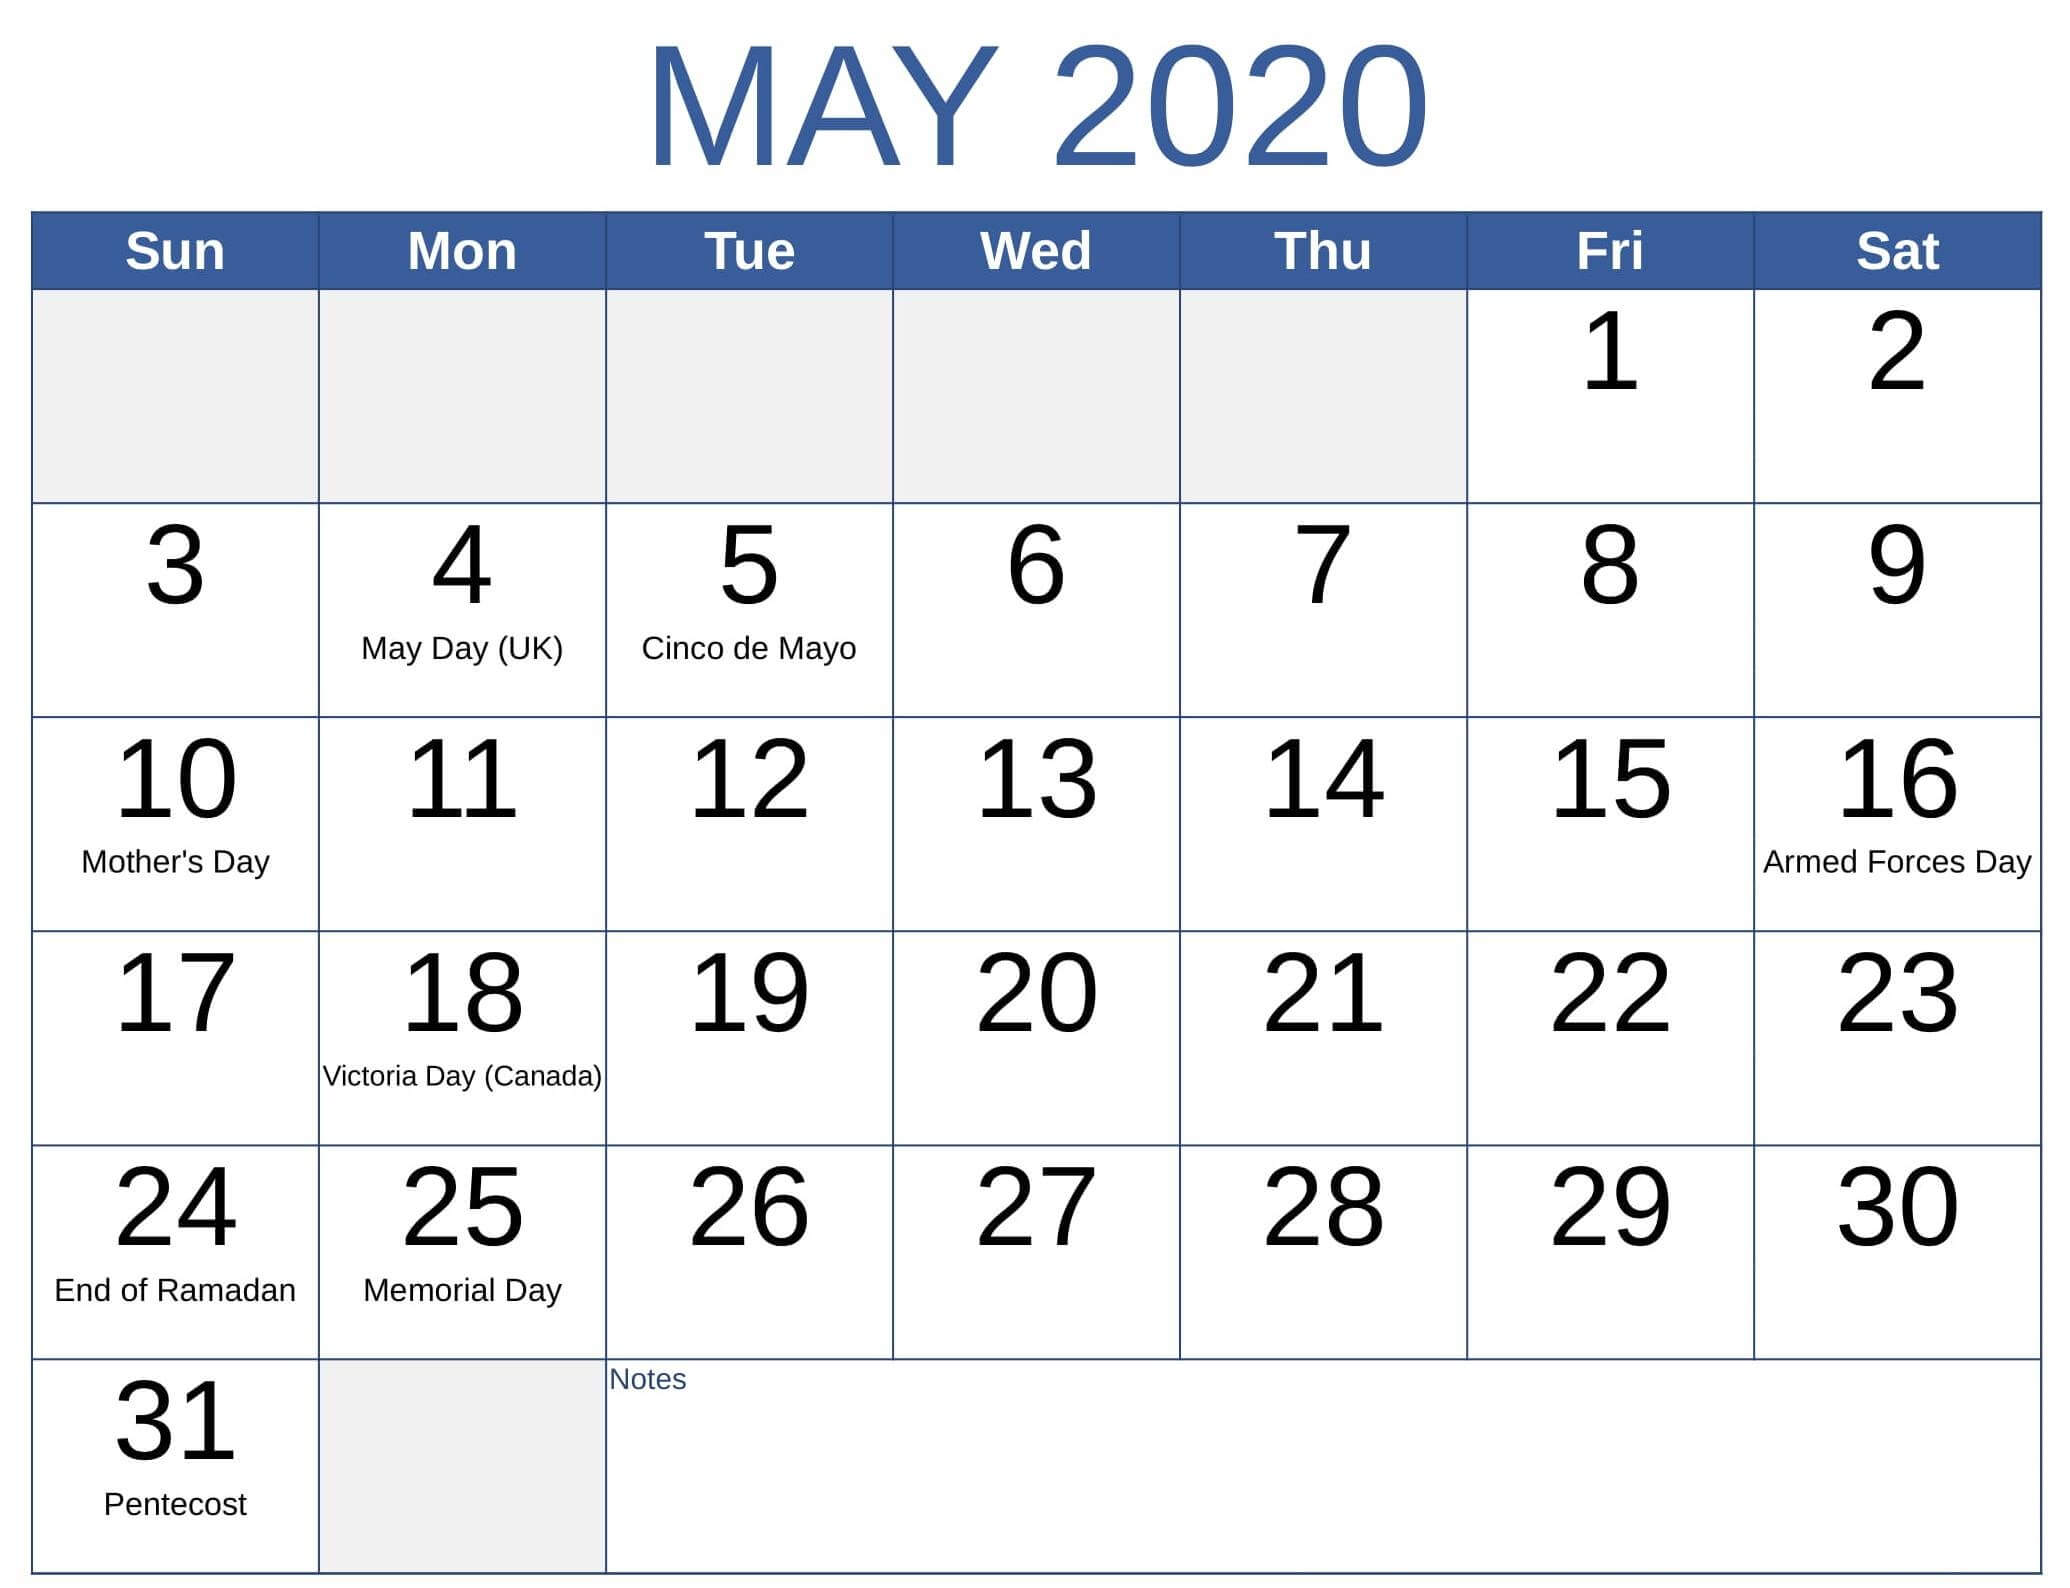 Calendar May 2020 With Holidays